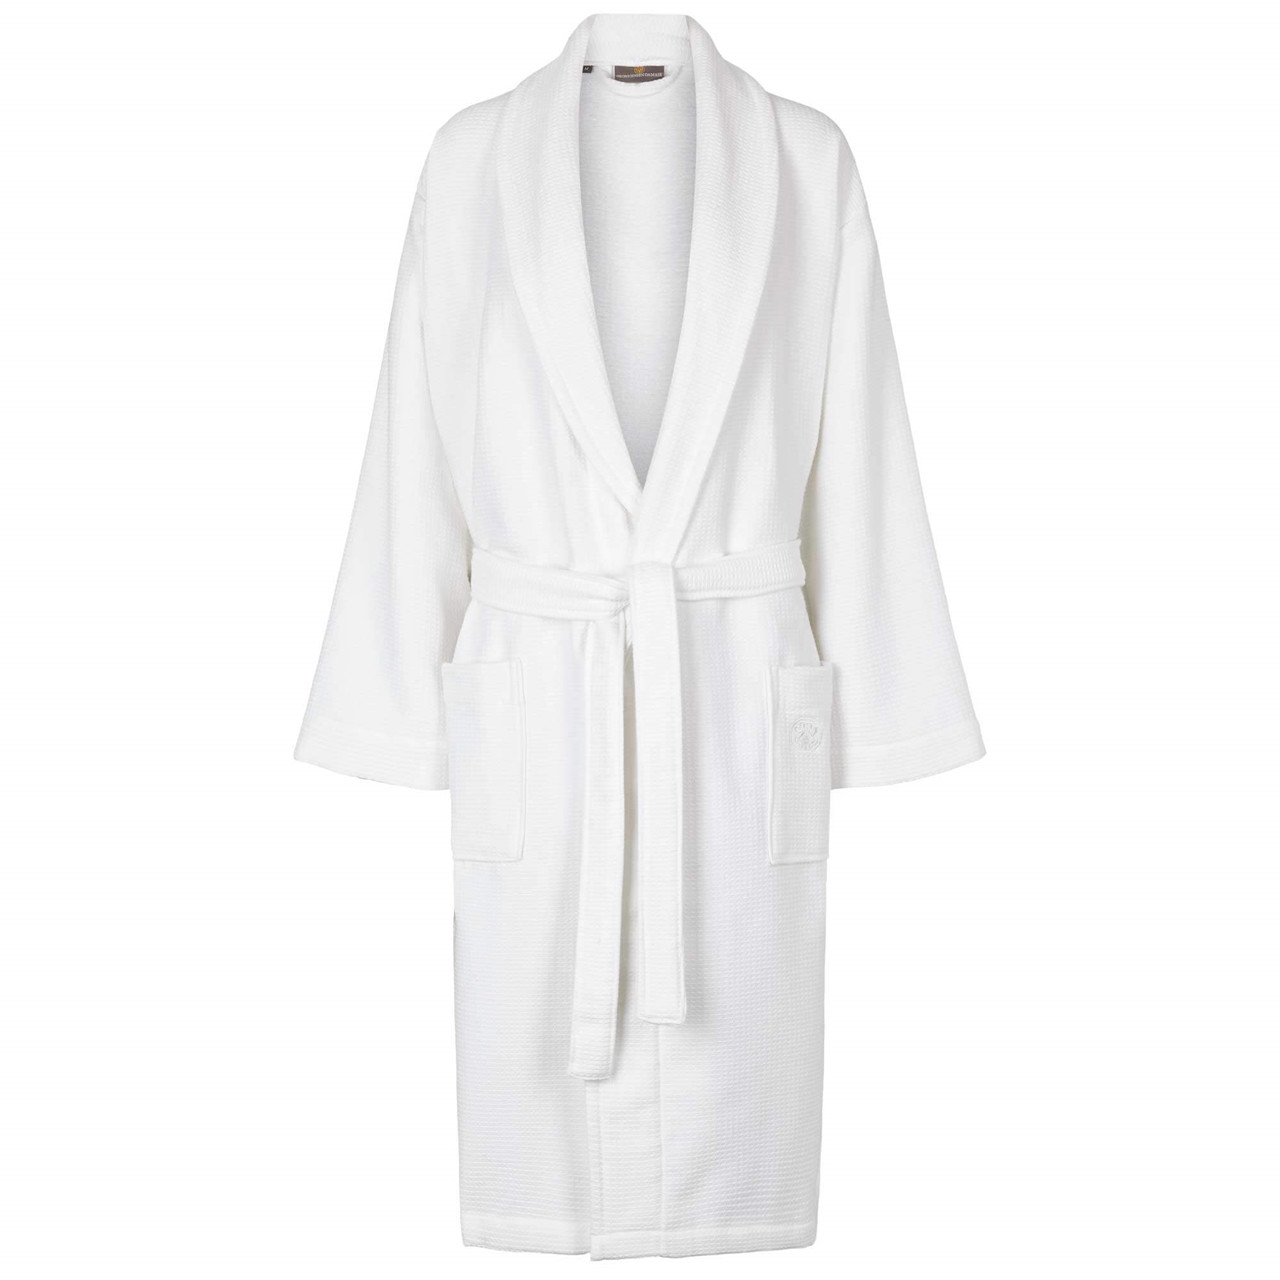 Classic White Bathrobe In An Exclusive Design Pure Everyday Luxury